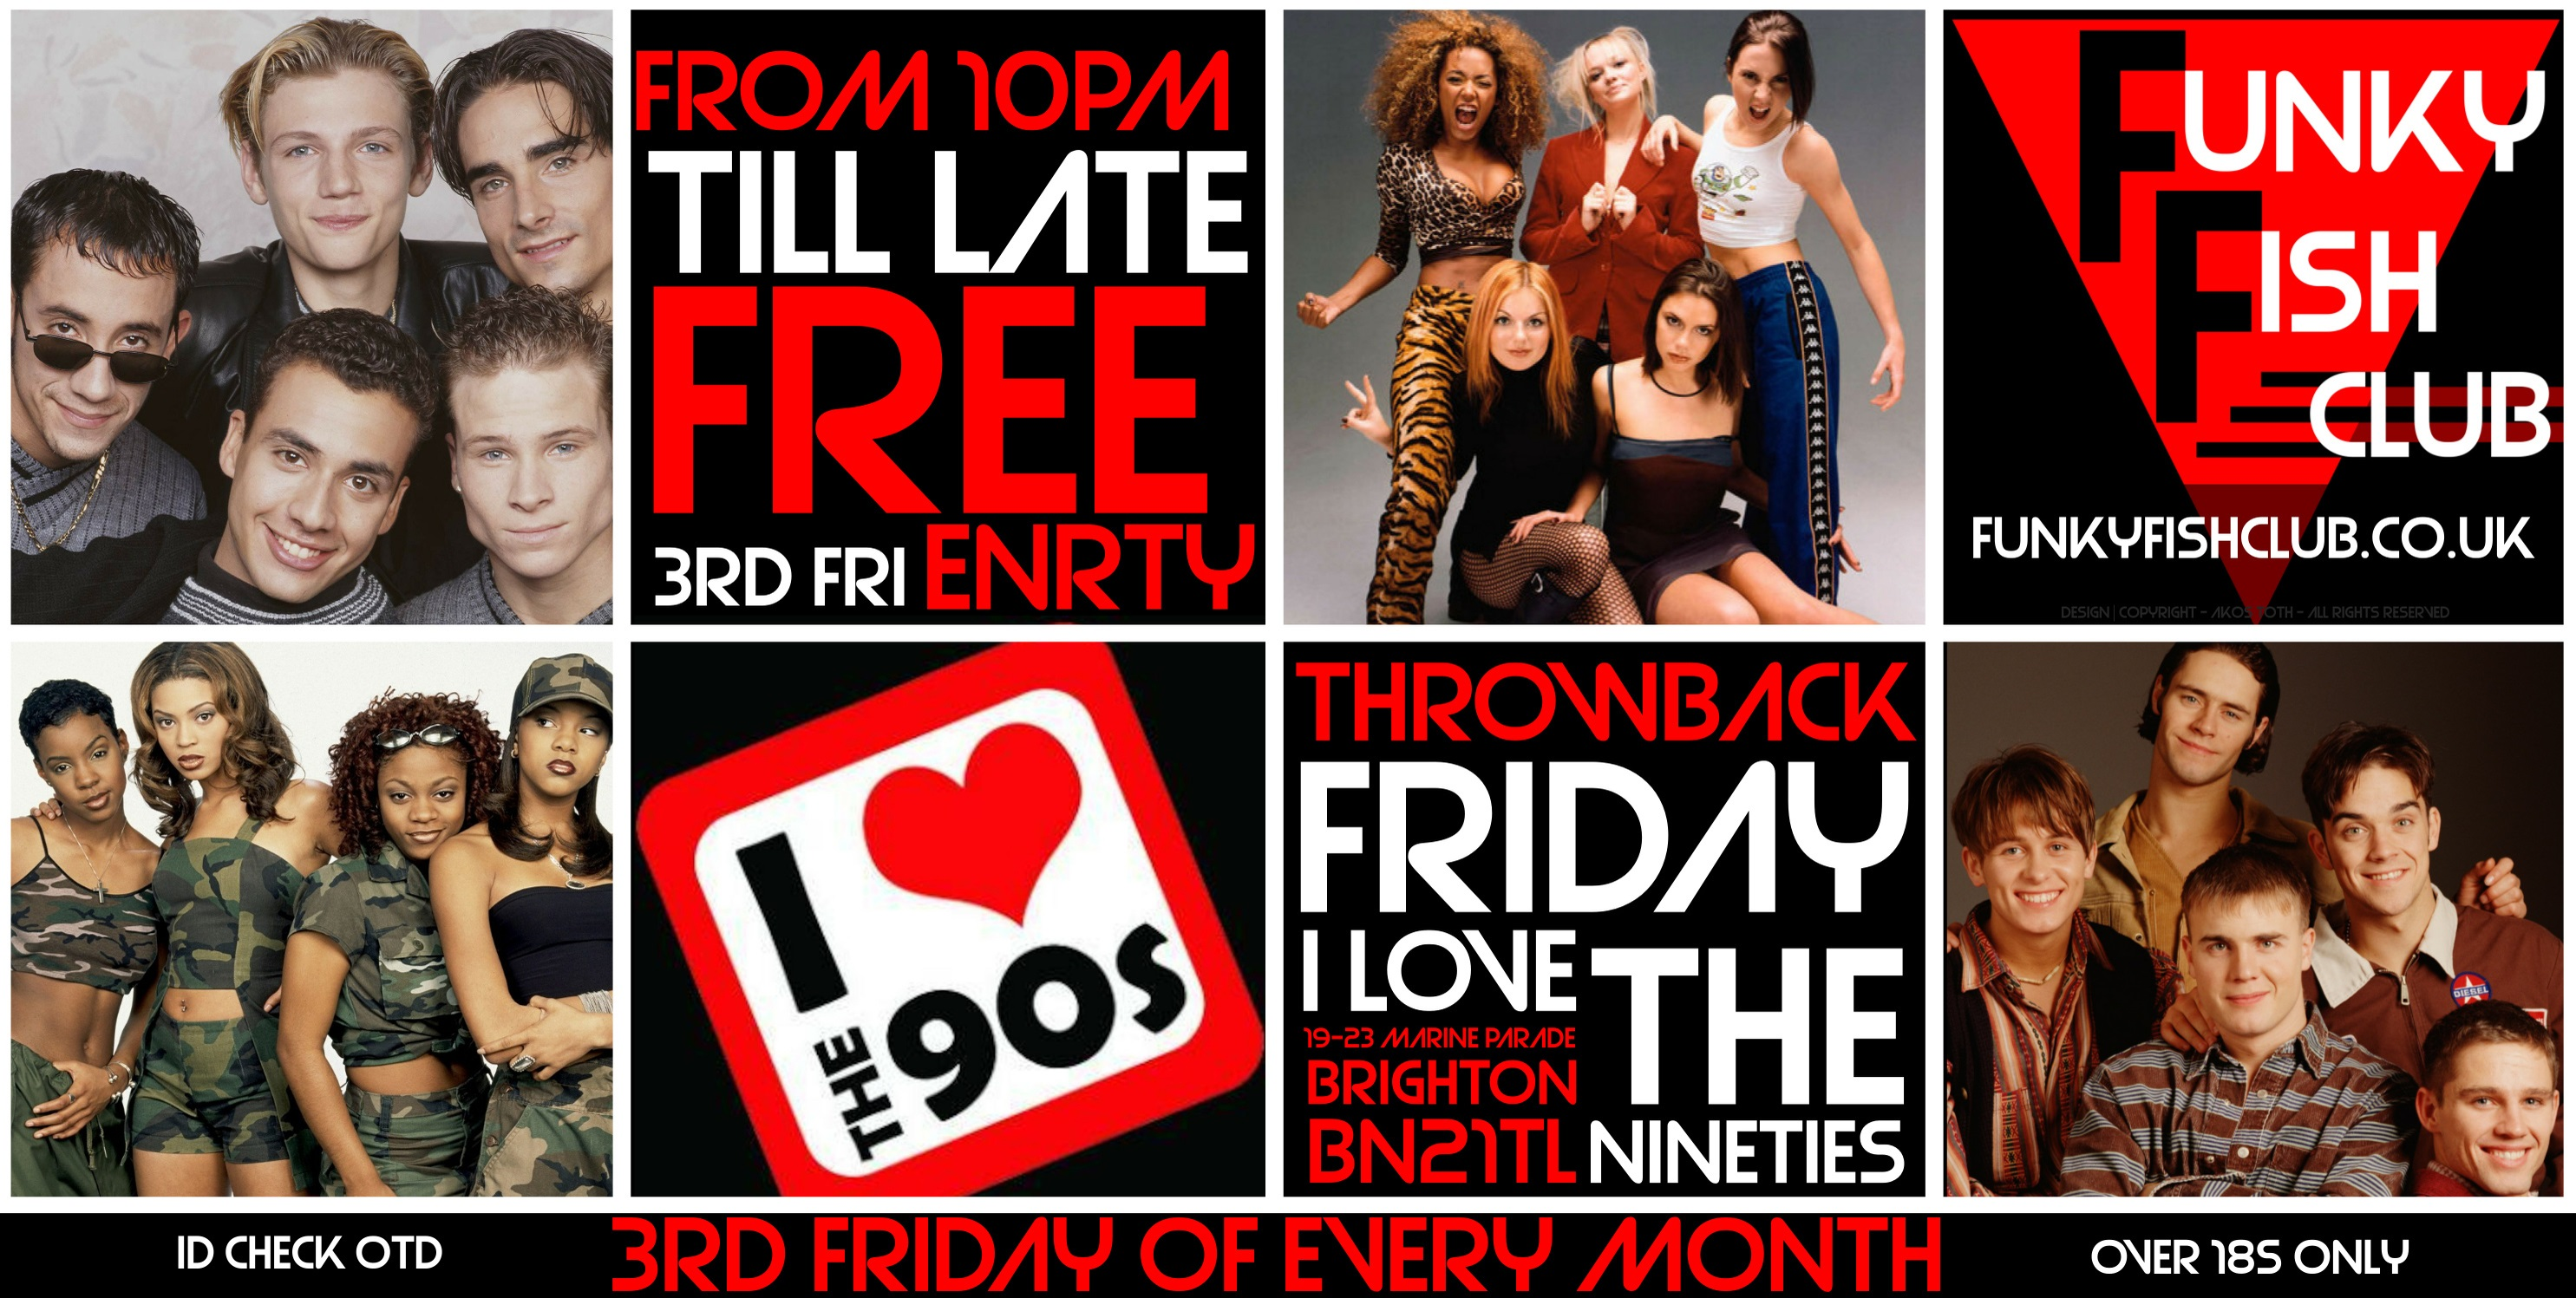 I LOVE THE 90s - FREE ENTRY